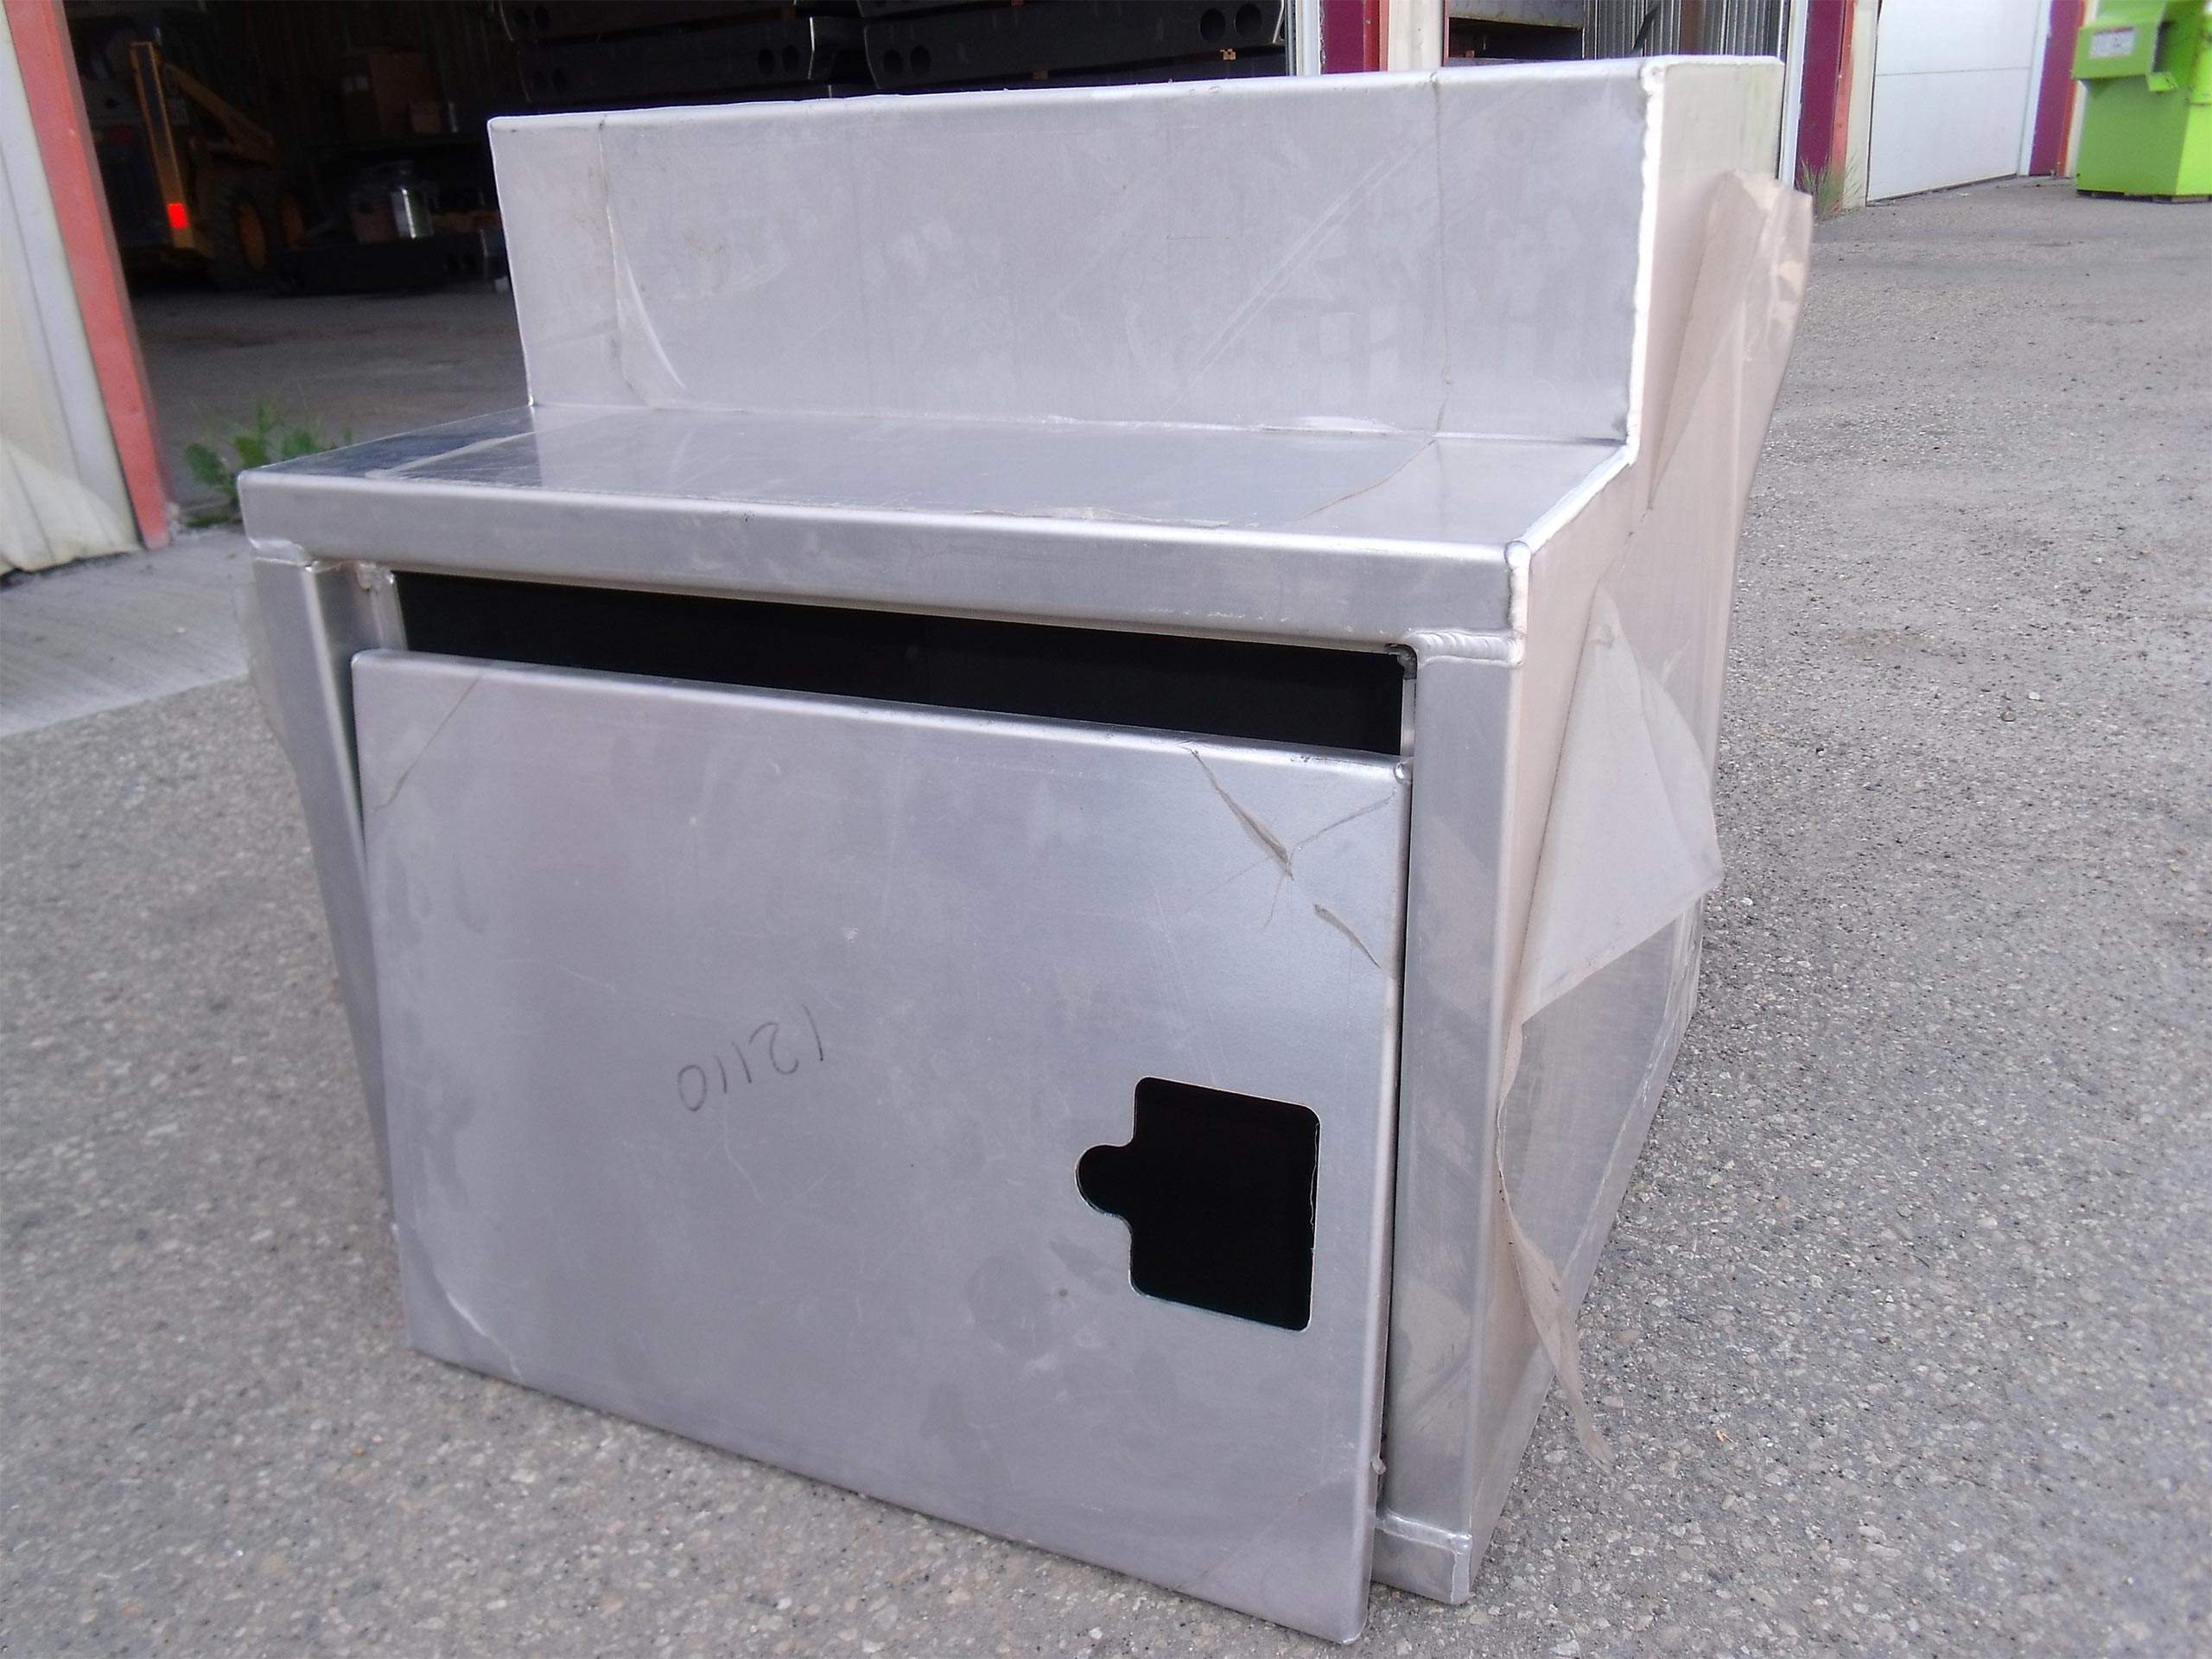 24-x-24-x-24-Aluminum-SPV-Step-Box